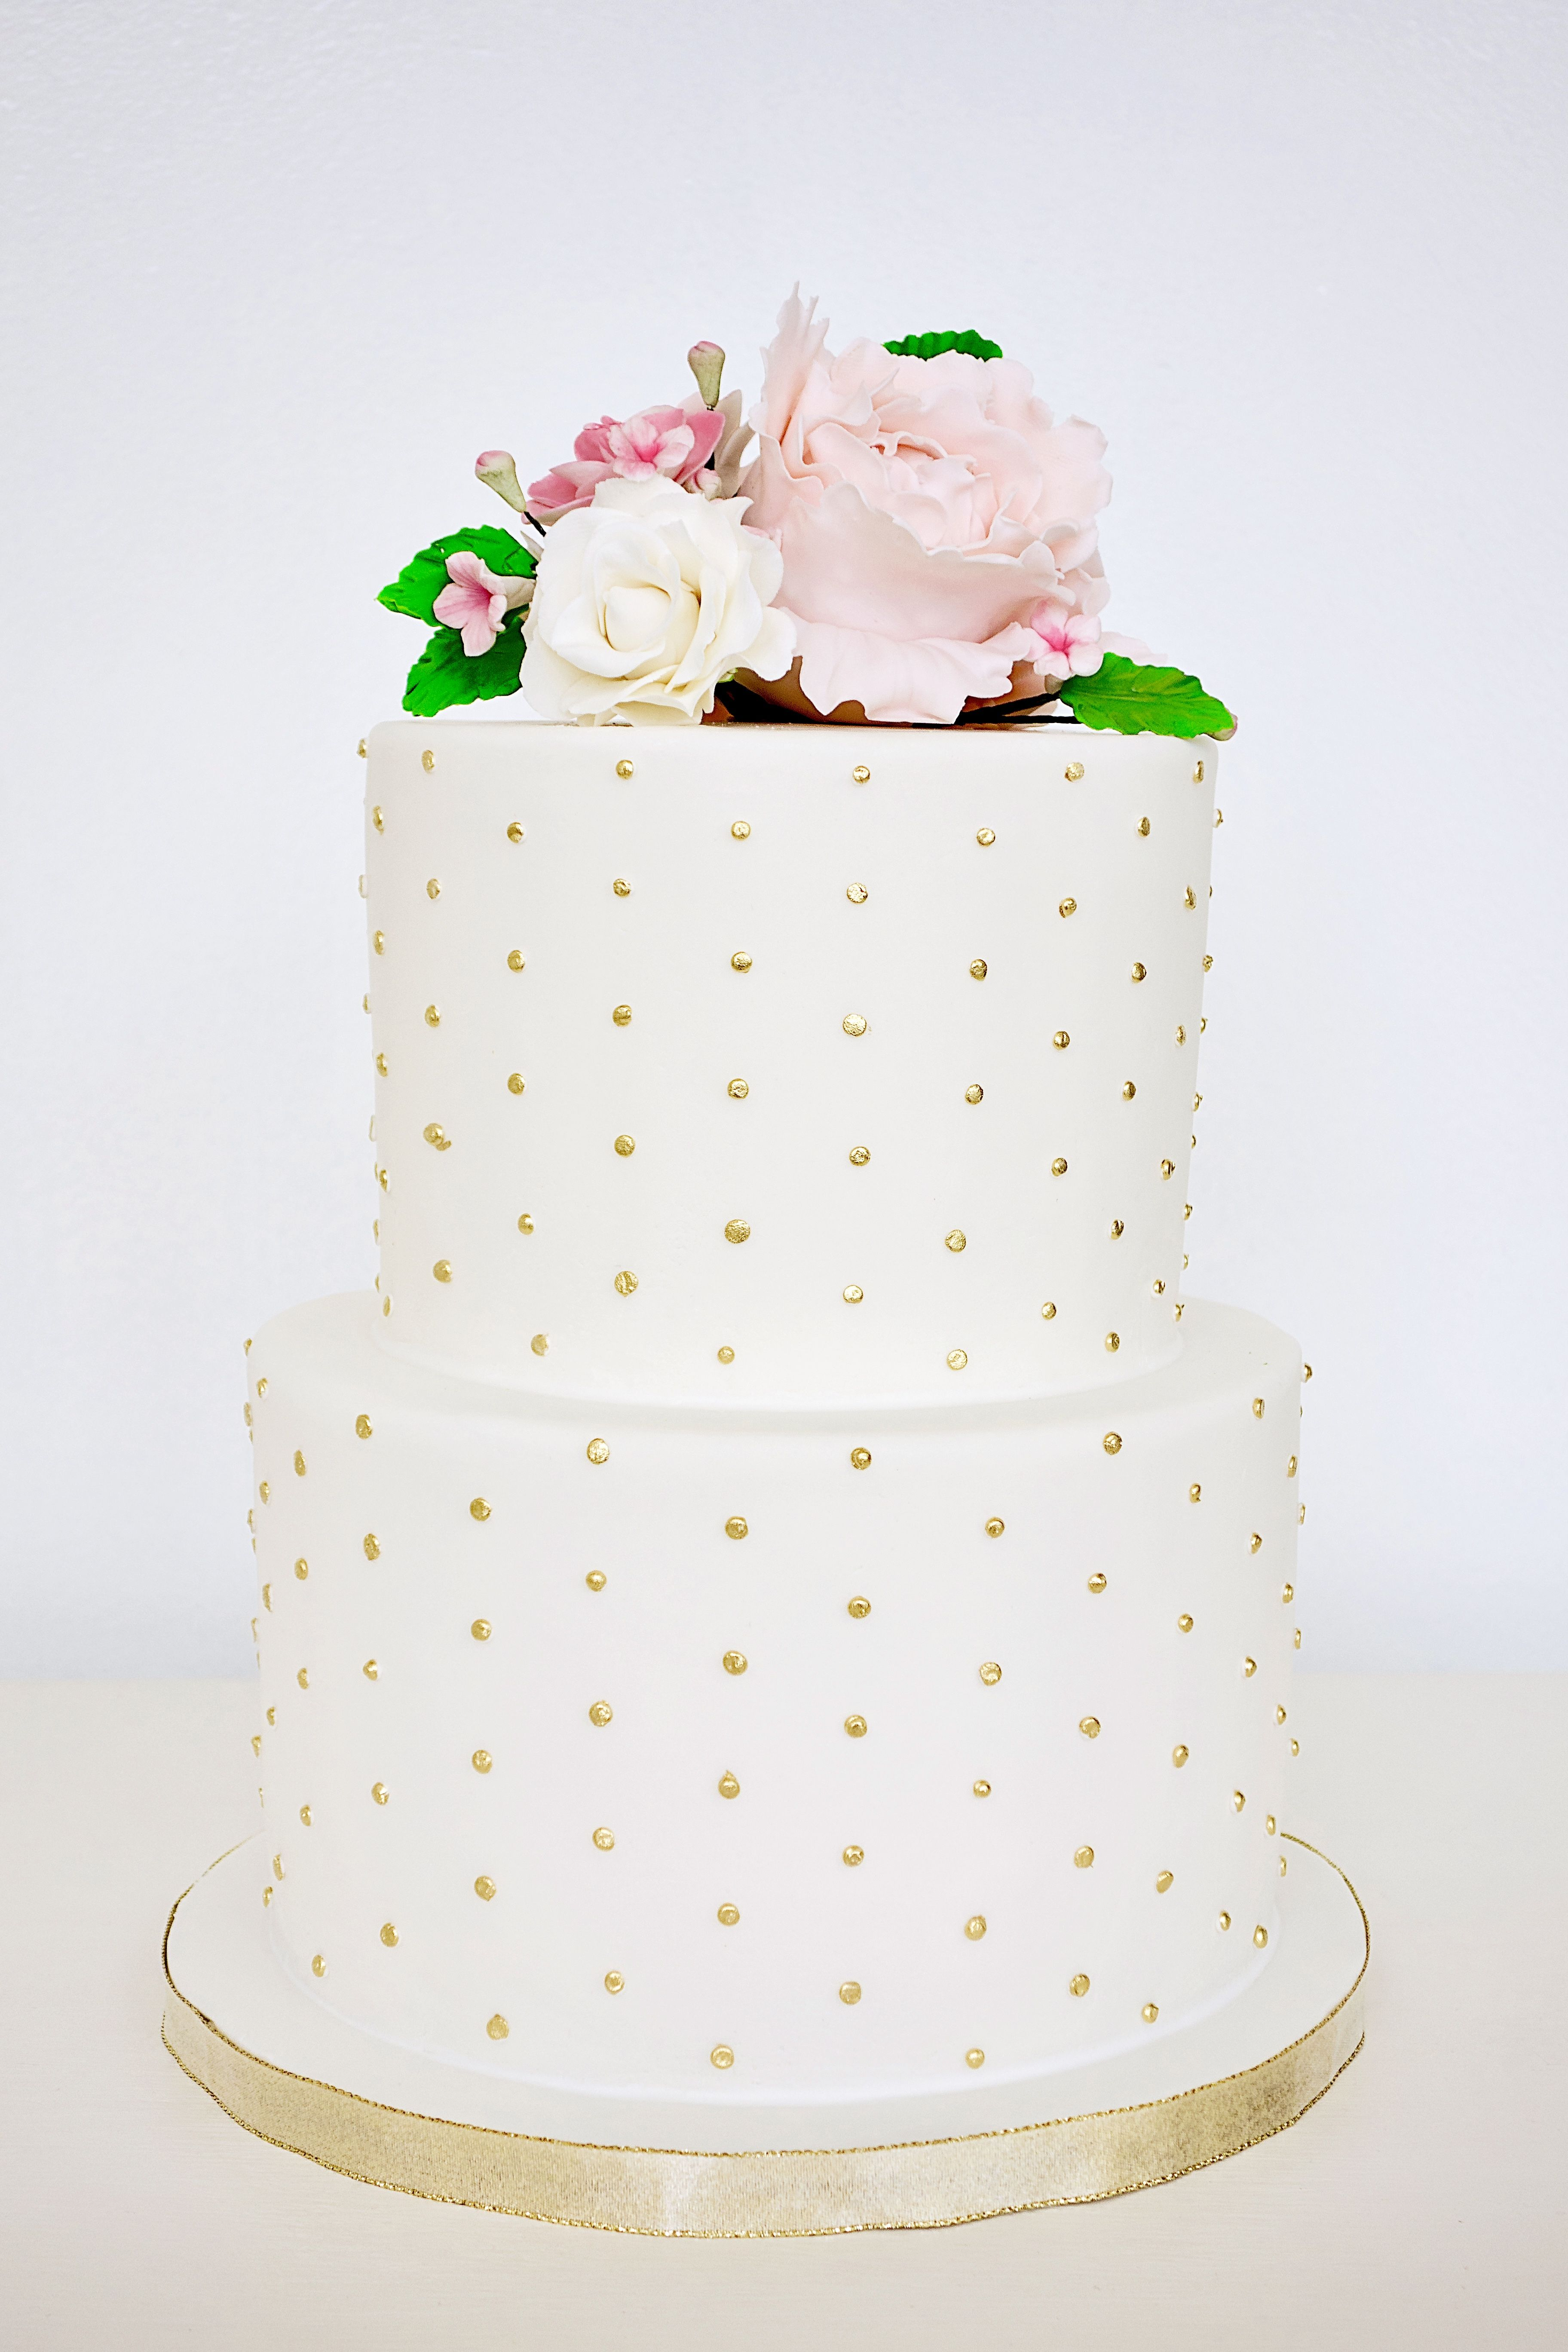 White And Gold Polka Dot Fondant Cake Topped With Pink Sugar